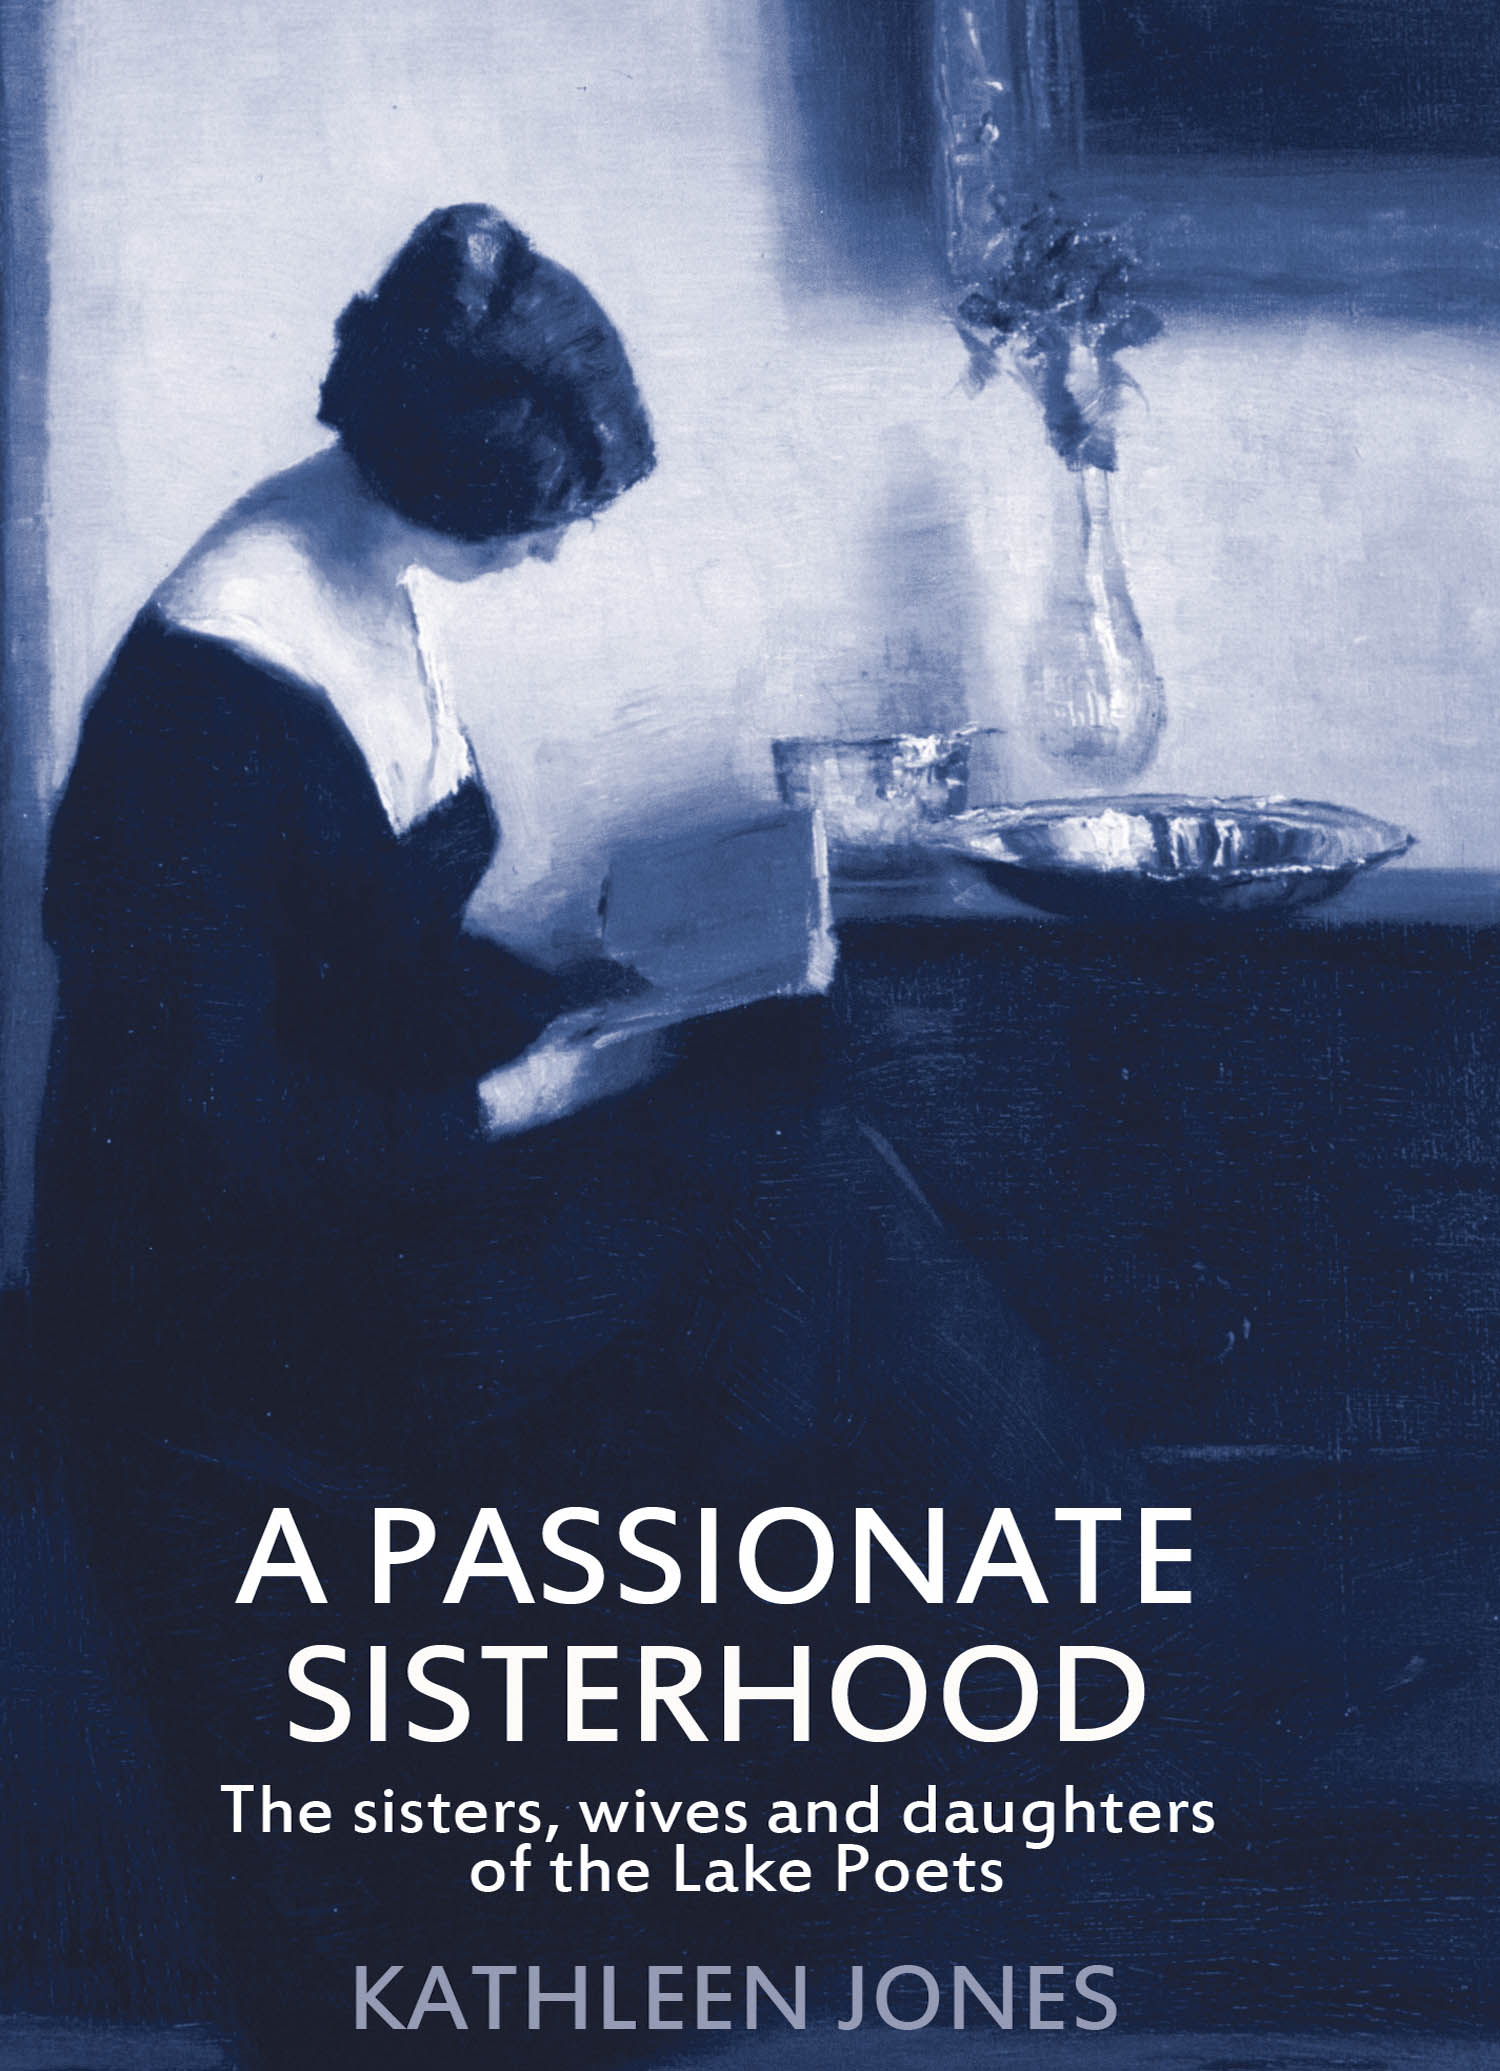 A Passionate Sisterhood: The Sisters, Wives and Daughters of the Lake Poets